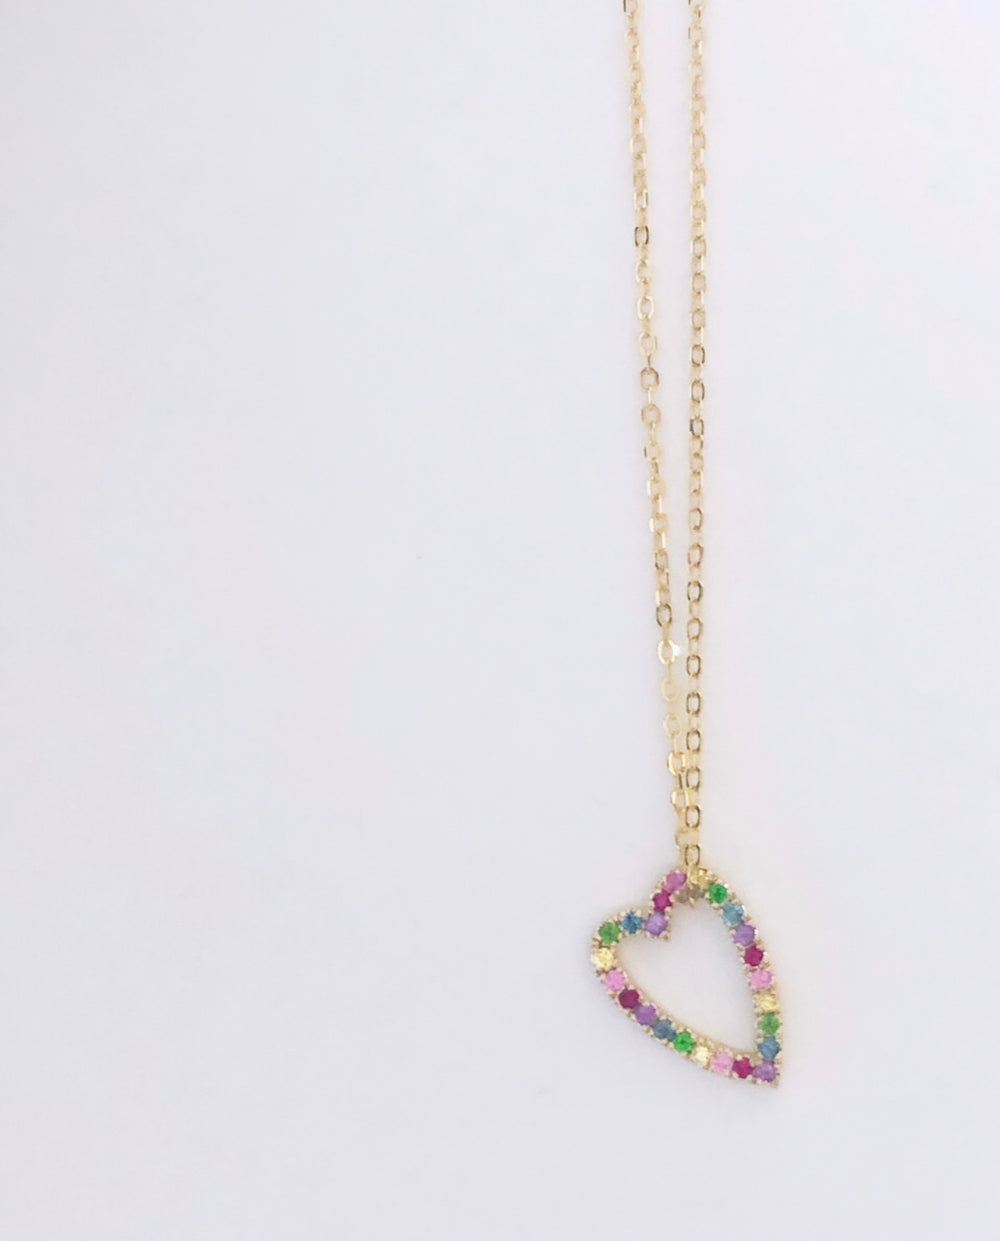 Rainbow heart necklace - to go